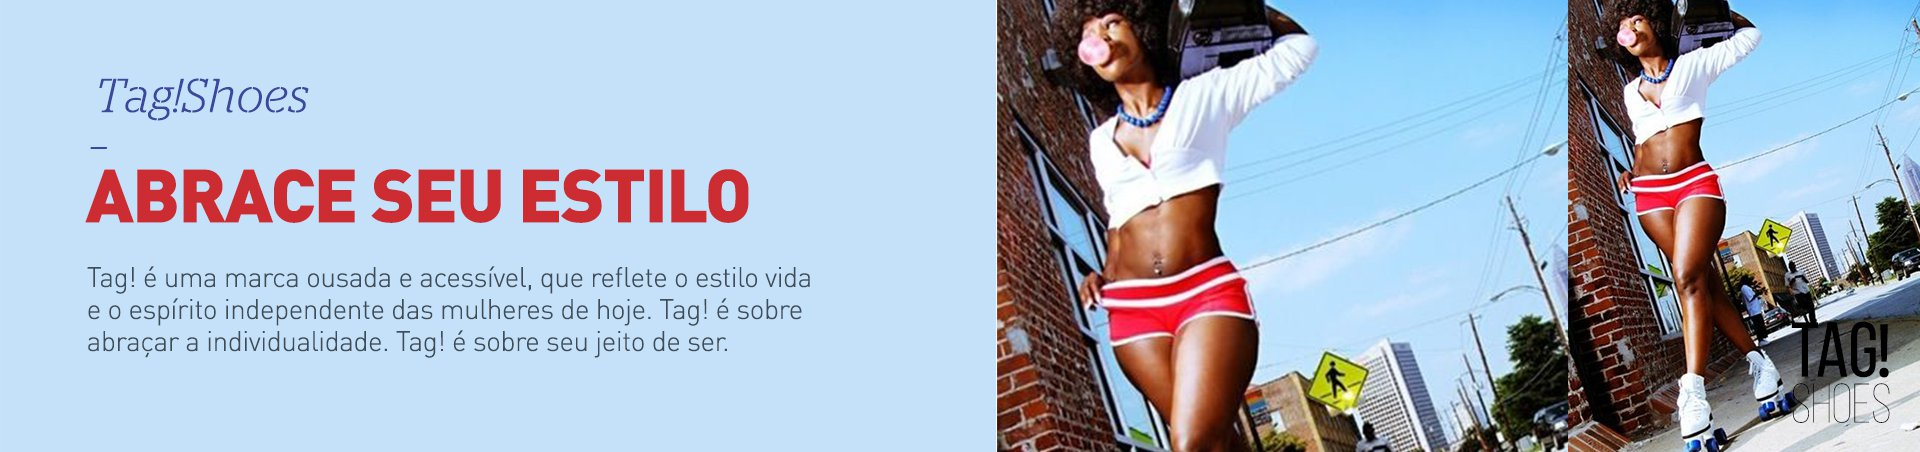 fullbanner-loja-tag-shoes